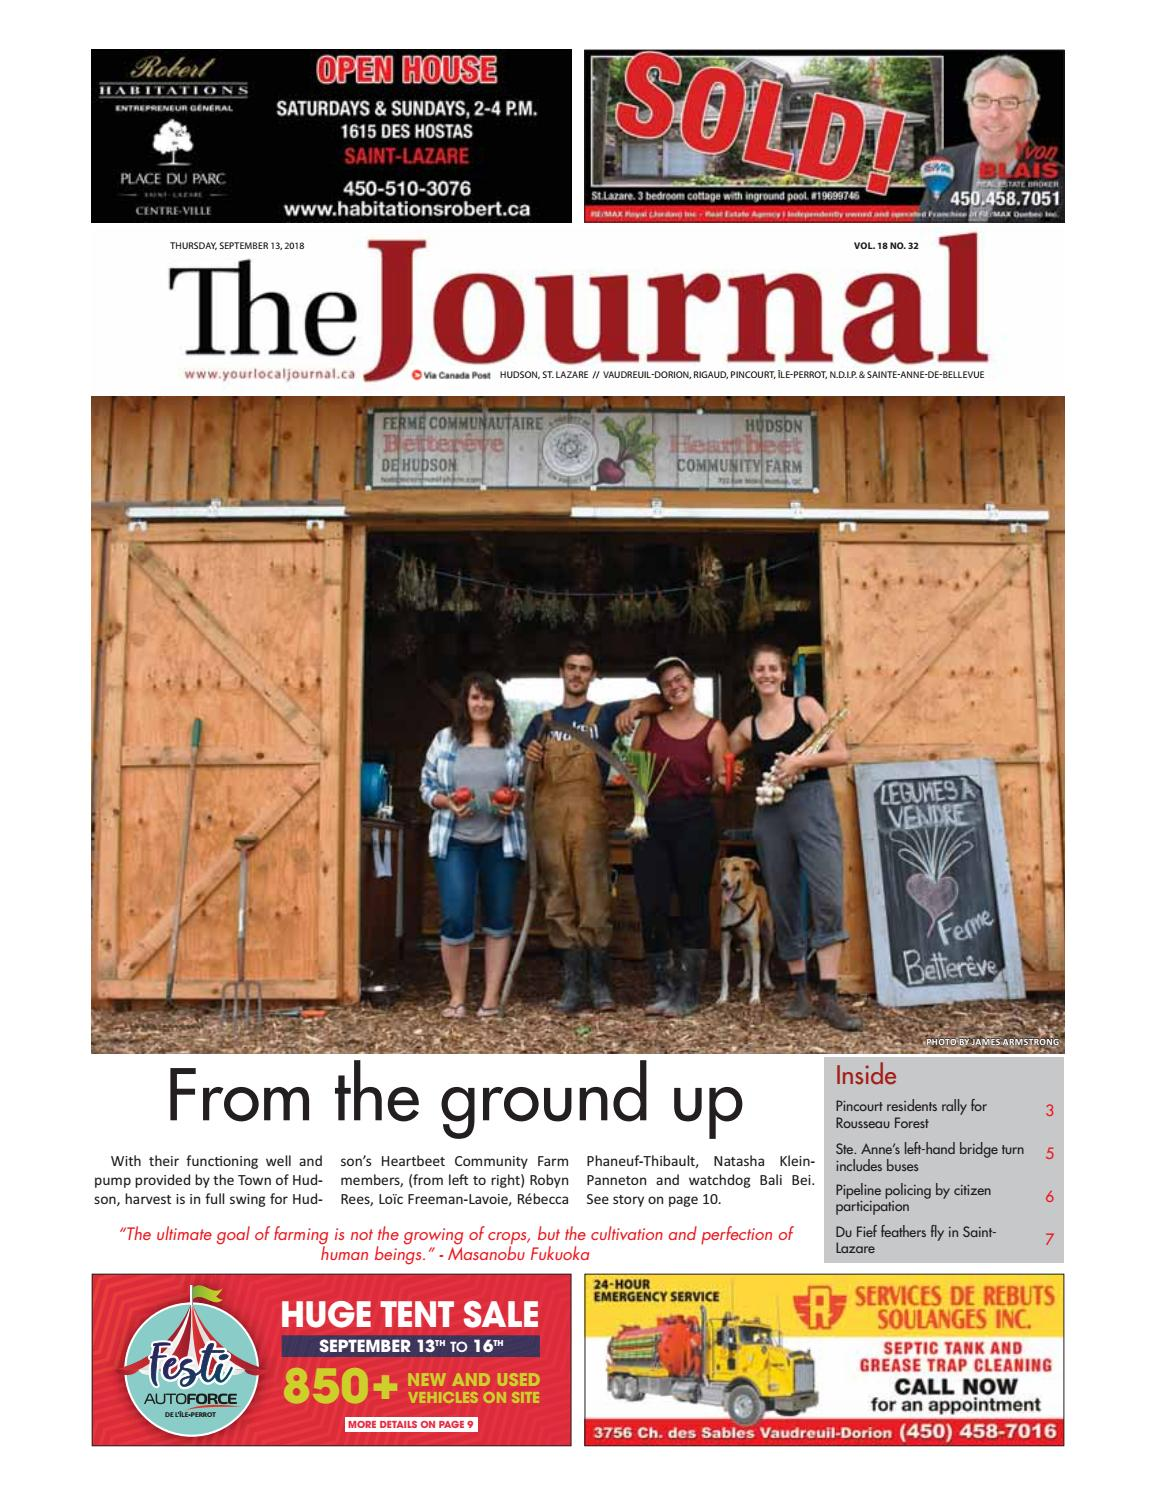 Cabinet Dentaire Saint Lazare The Journal Thursday September 13th 2018 By Your Local Journal